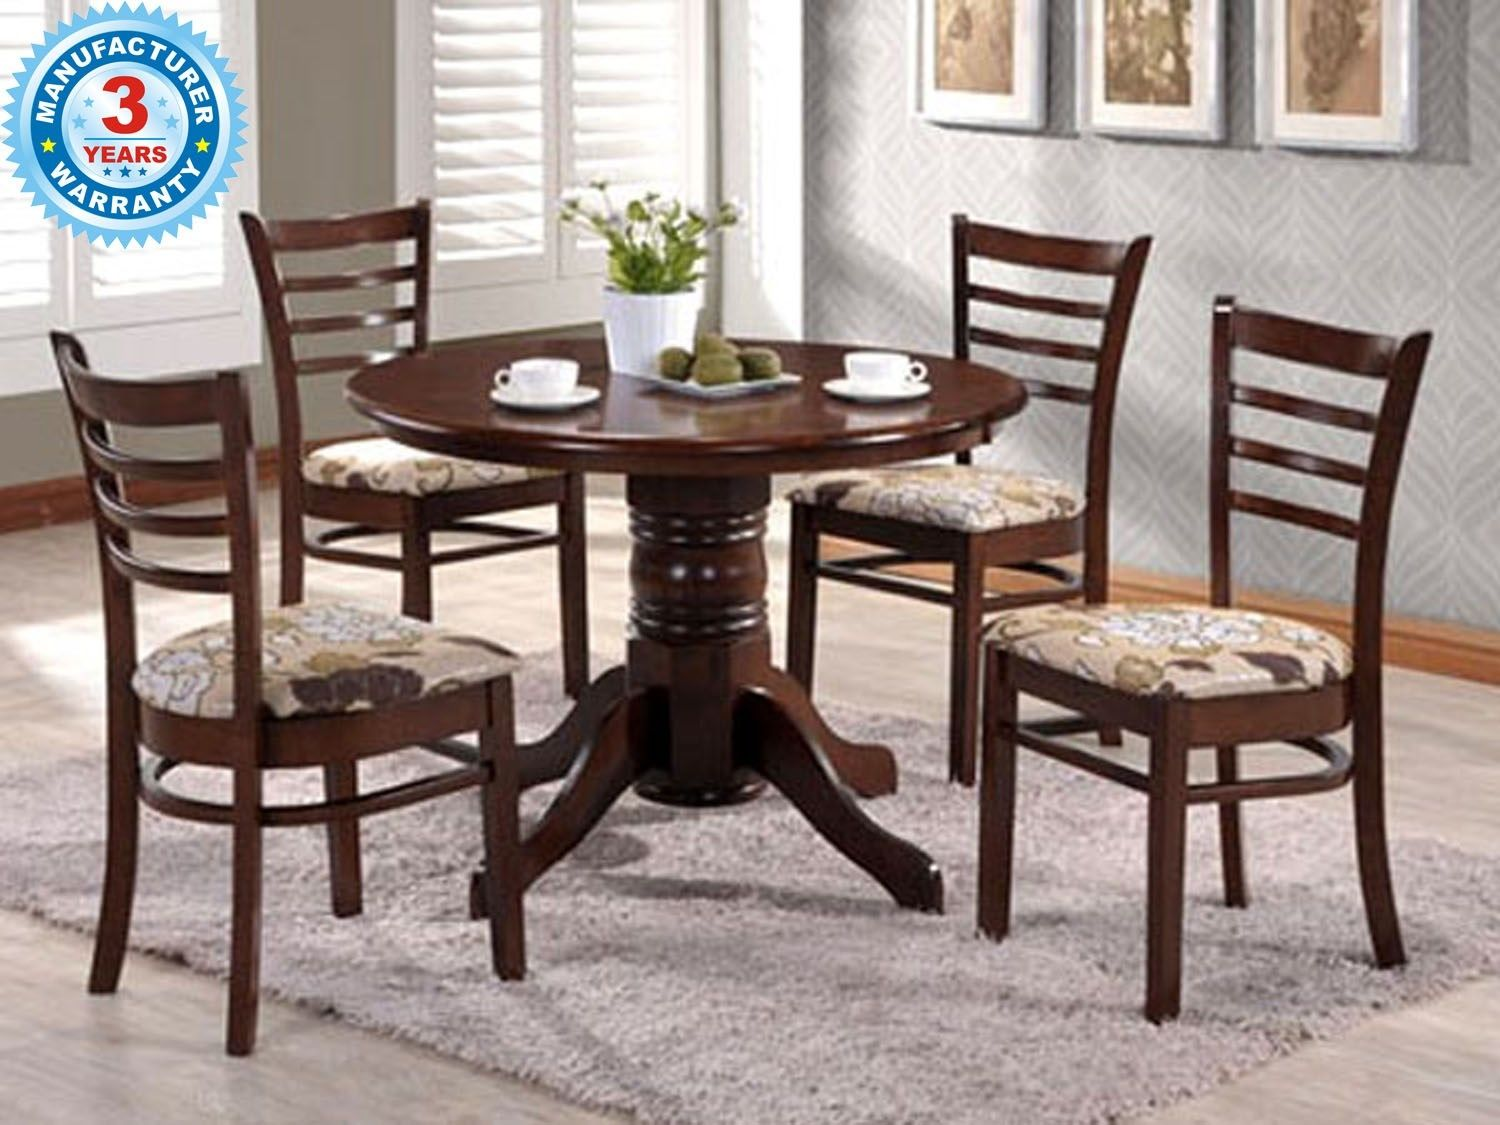 Dining Table Set Olx Dining Table Dining Table Chairs Dining Room Furniture